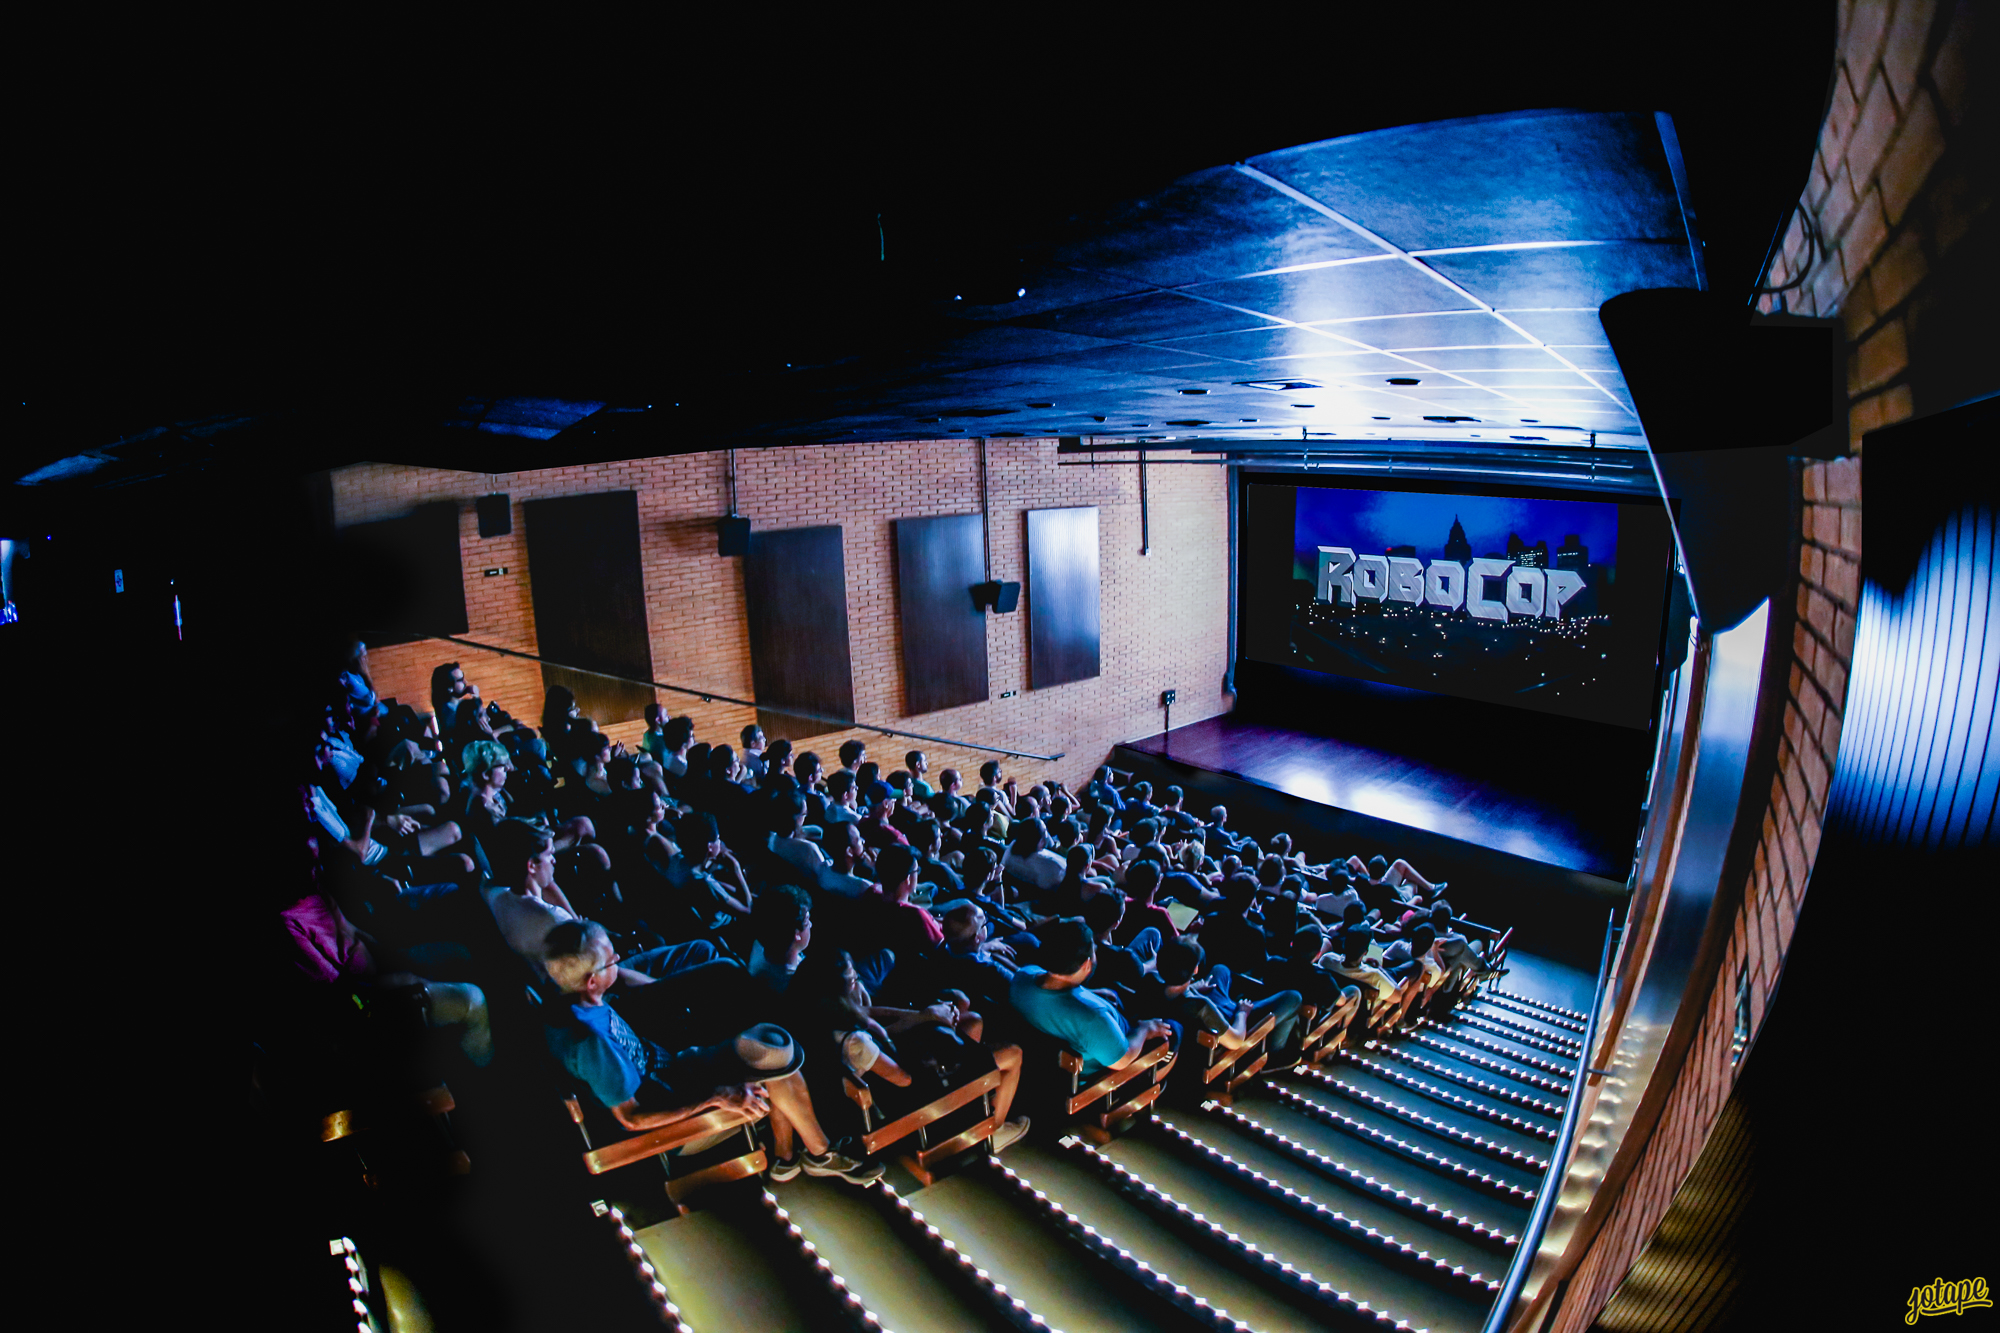 Circuito Sp Cine : The best independent cinemas in são paulo